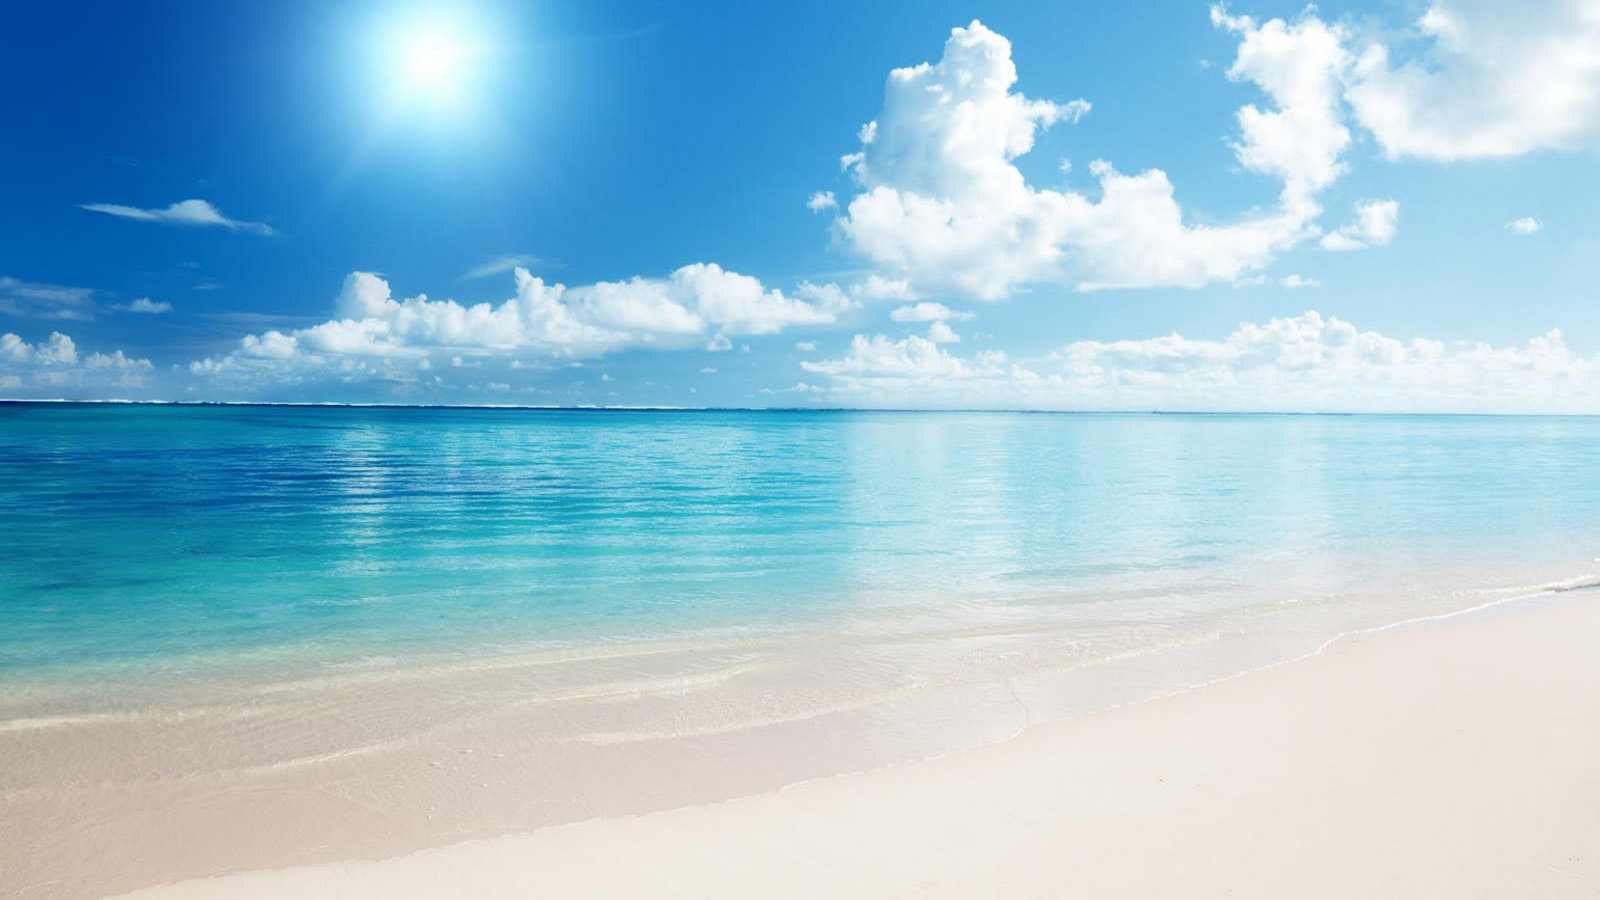 beach-wallpaper-backgrounds1